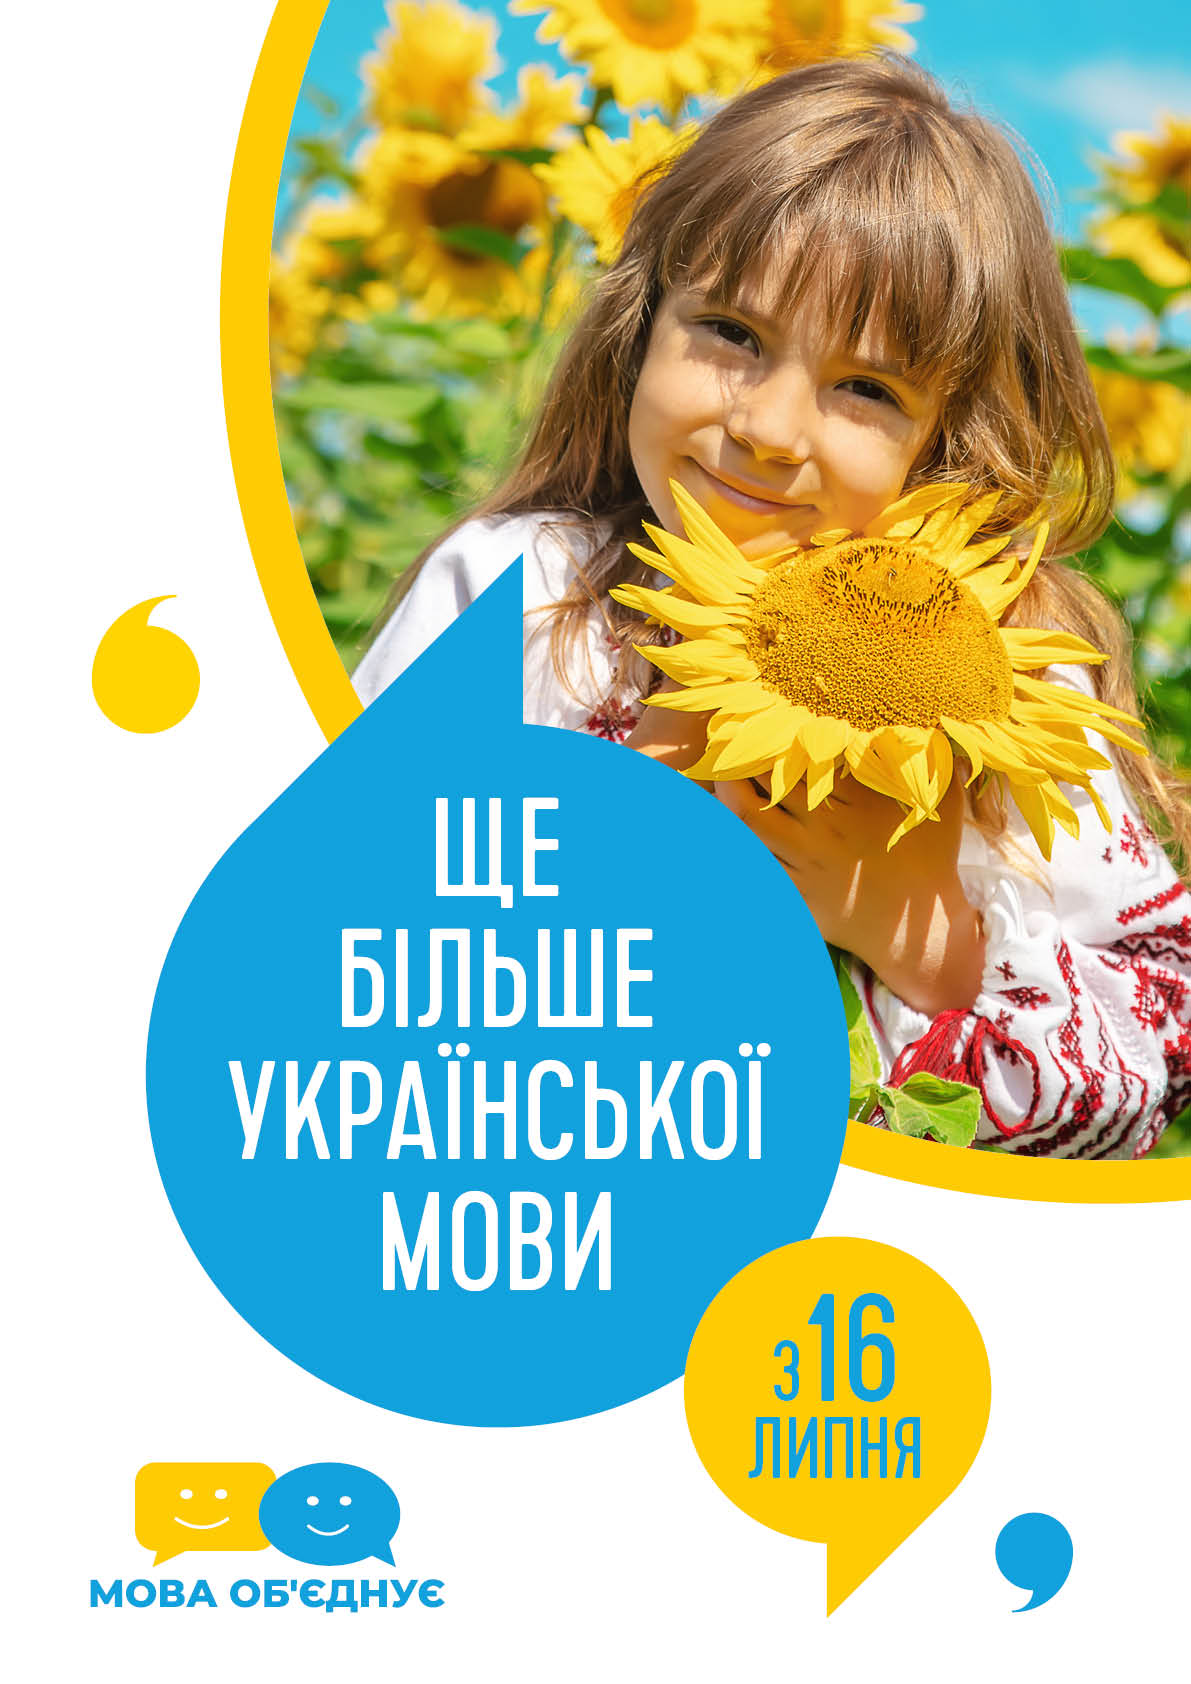 Ukr Mova Poster A2 Preview 1